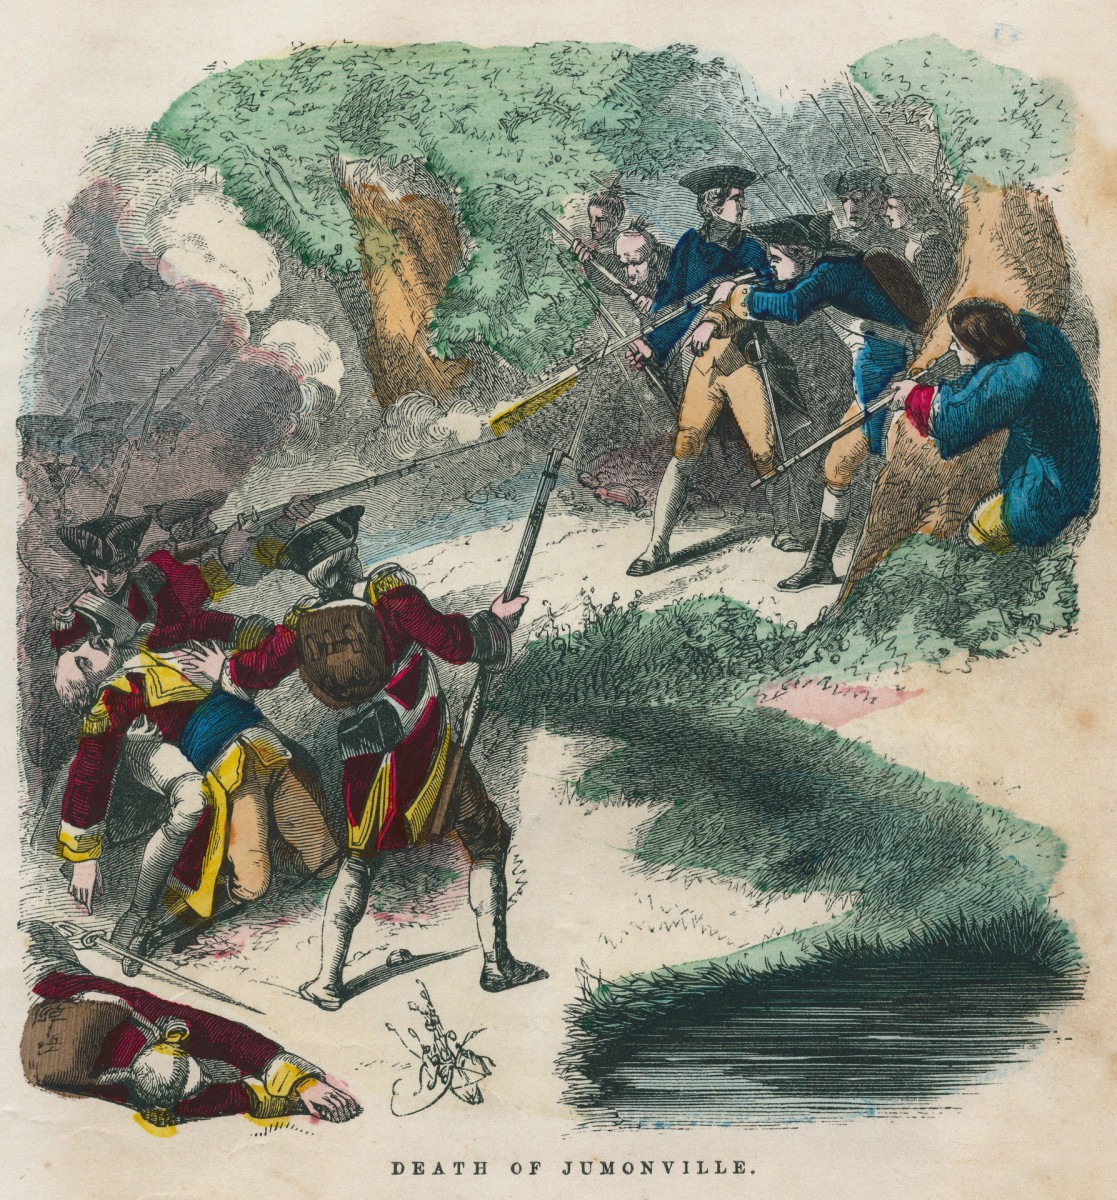 The death of French Ensign Joseph Coulon de Jumonville during a battle against British forces led by George Washington, on May 28, 1754.